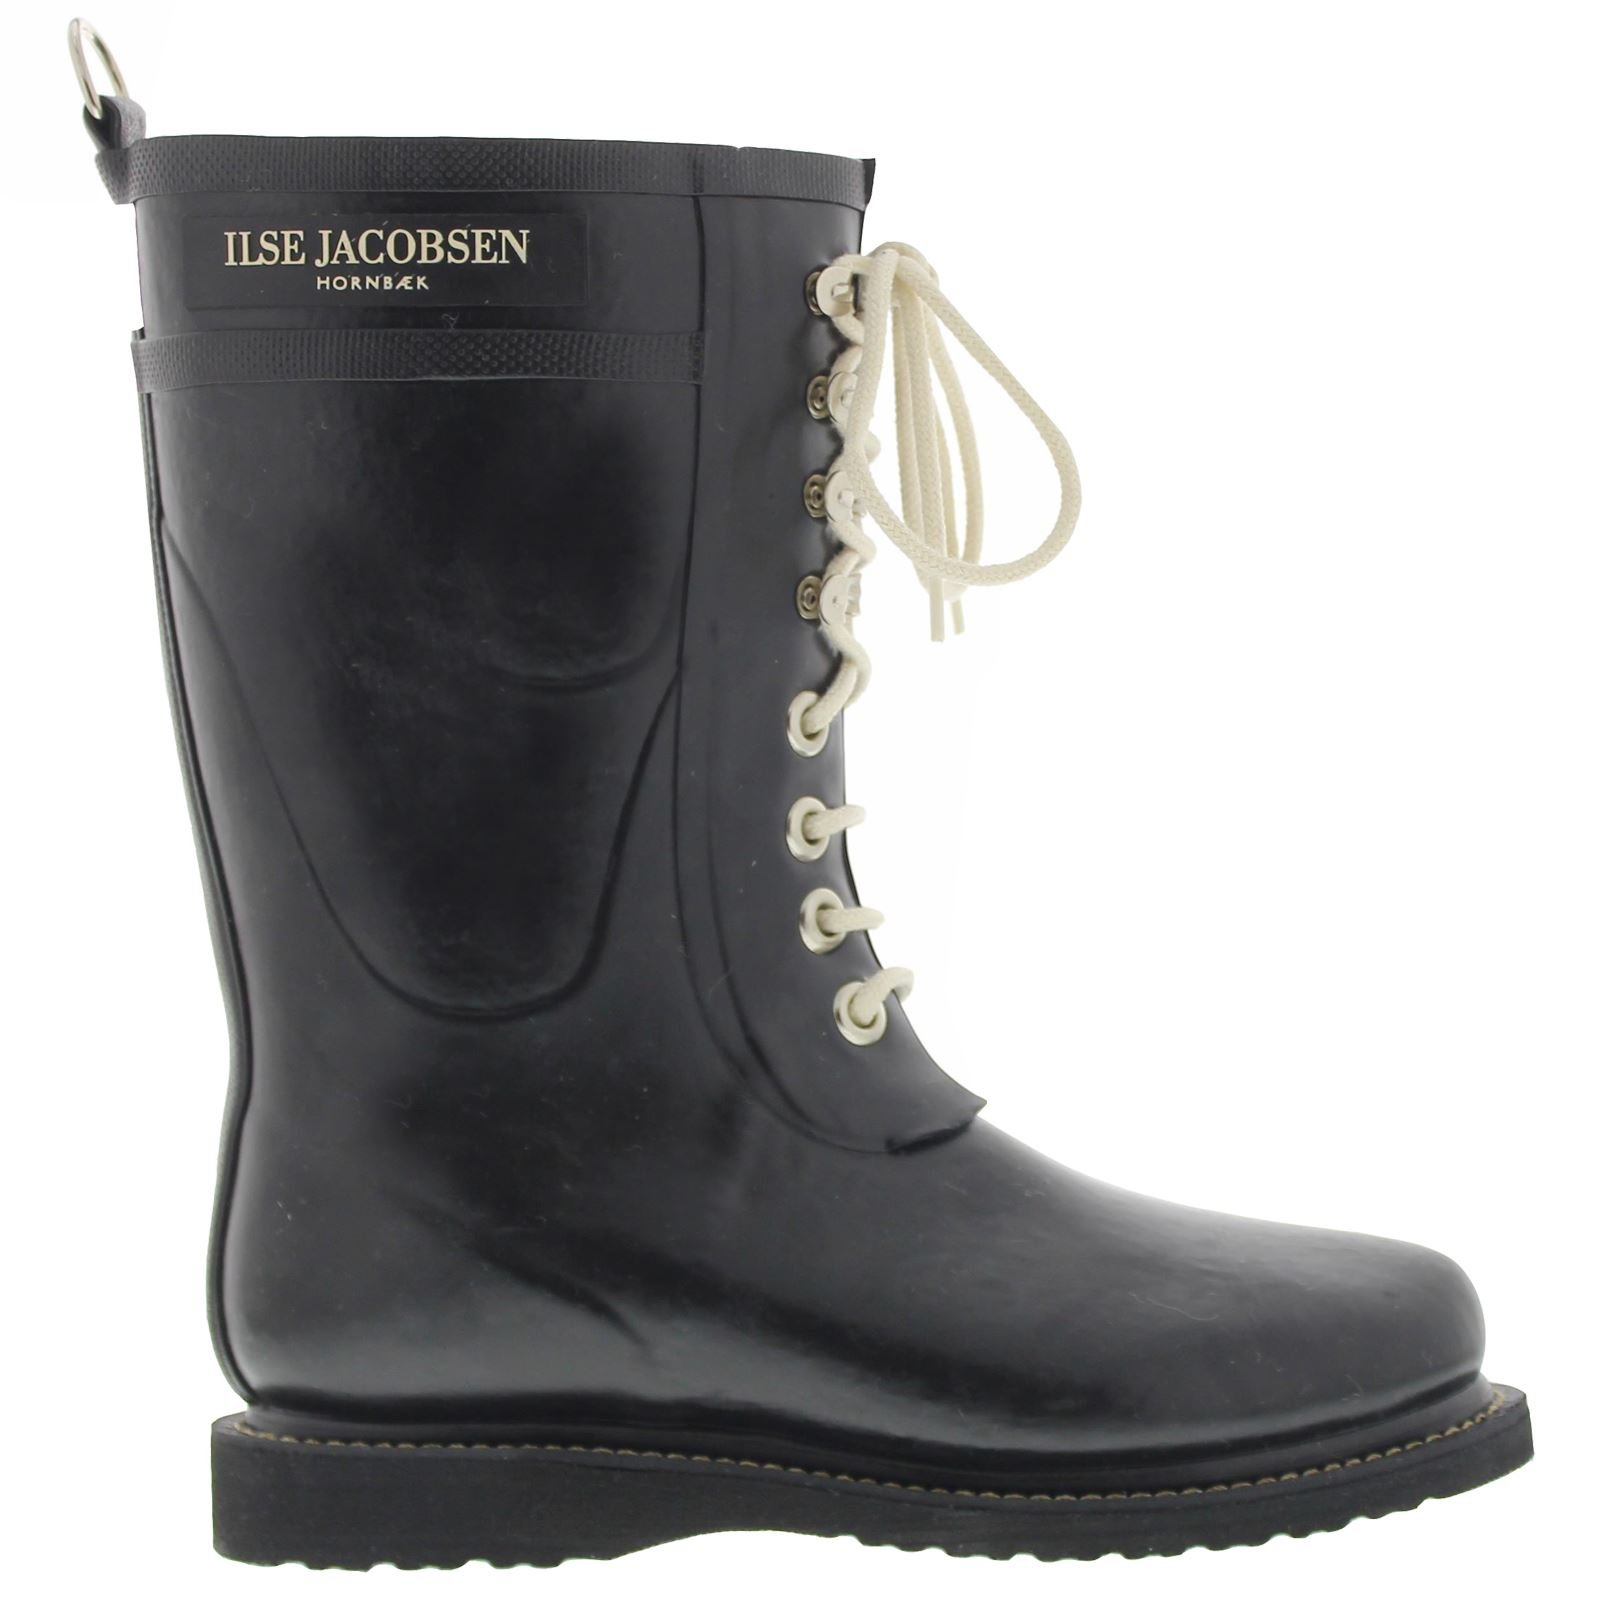 Ilse Jacobsen Rub15 Boot - Women's Black 38